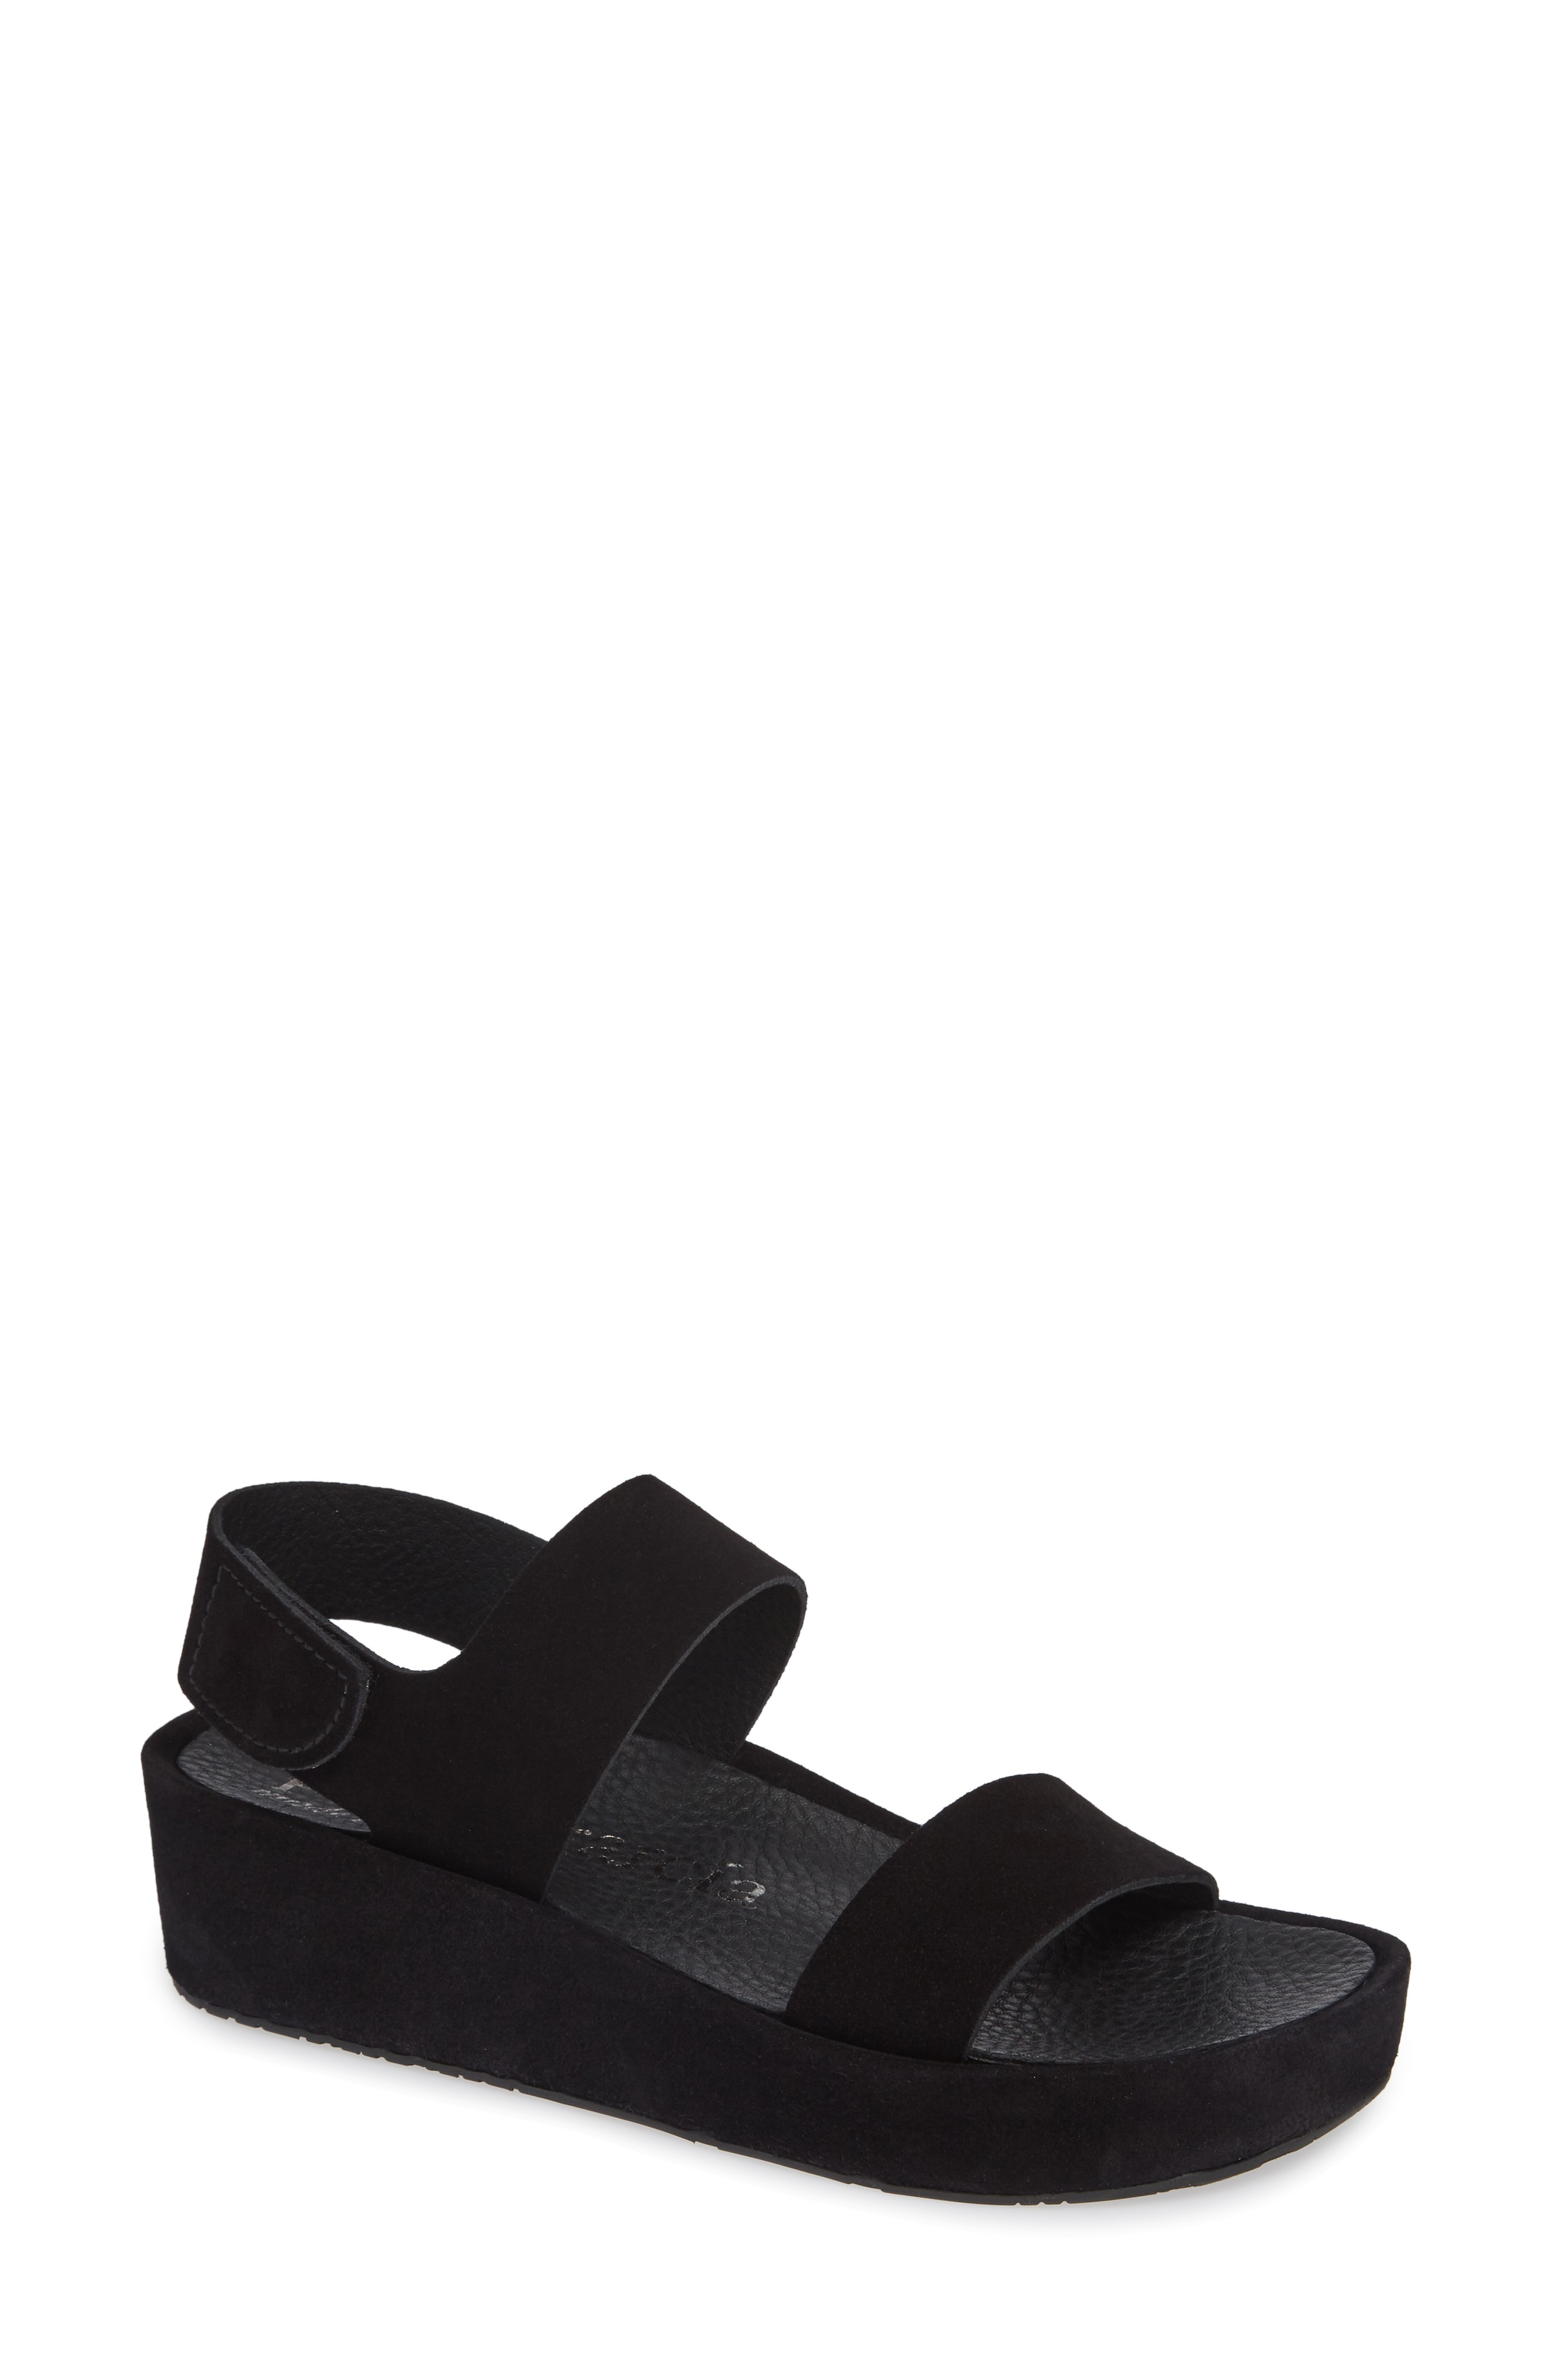 Pedro Garcia Women's Shoes | Nordstrom